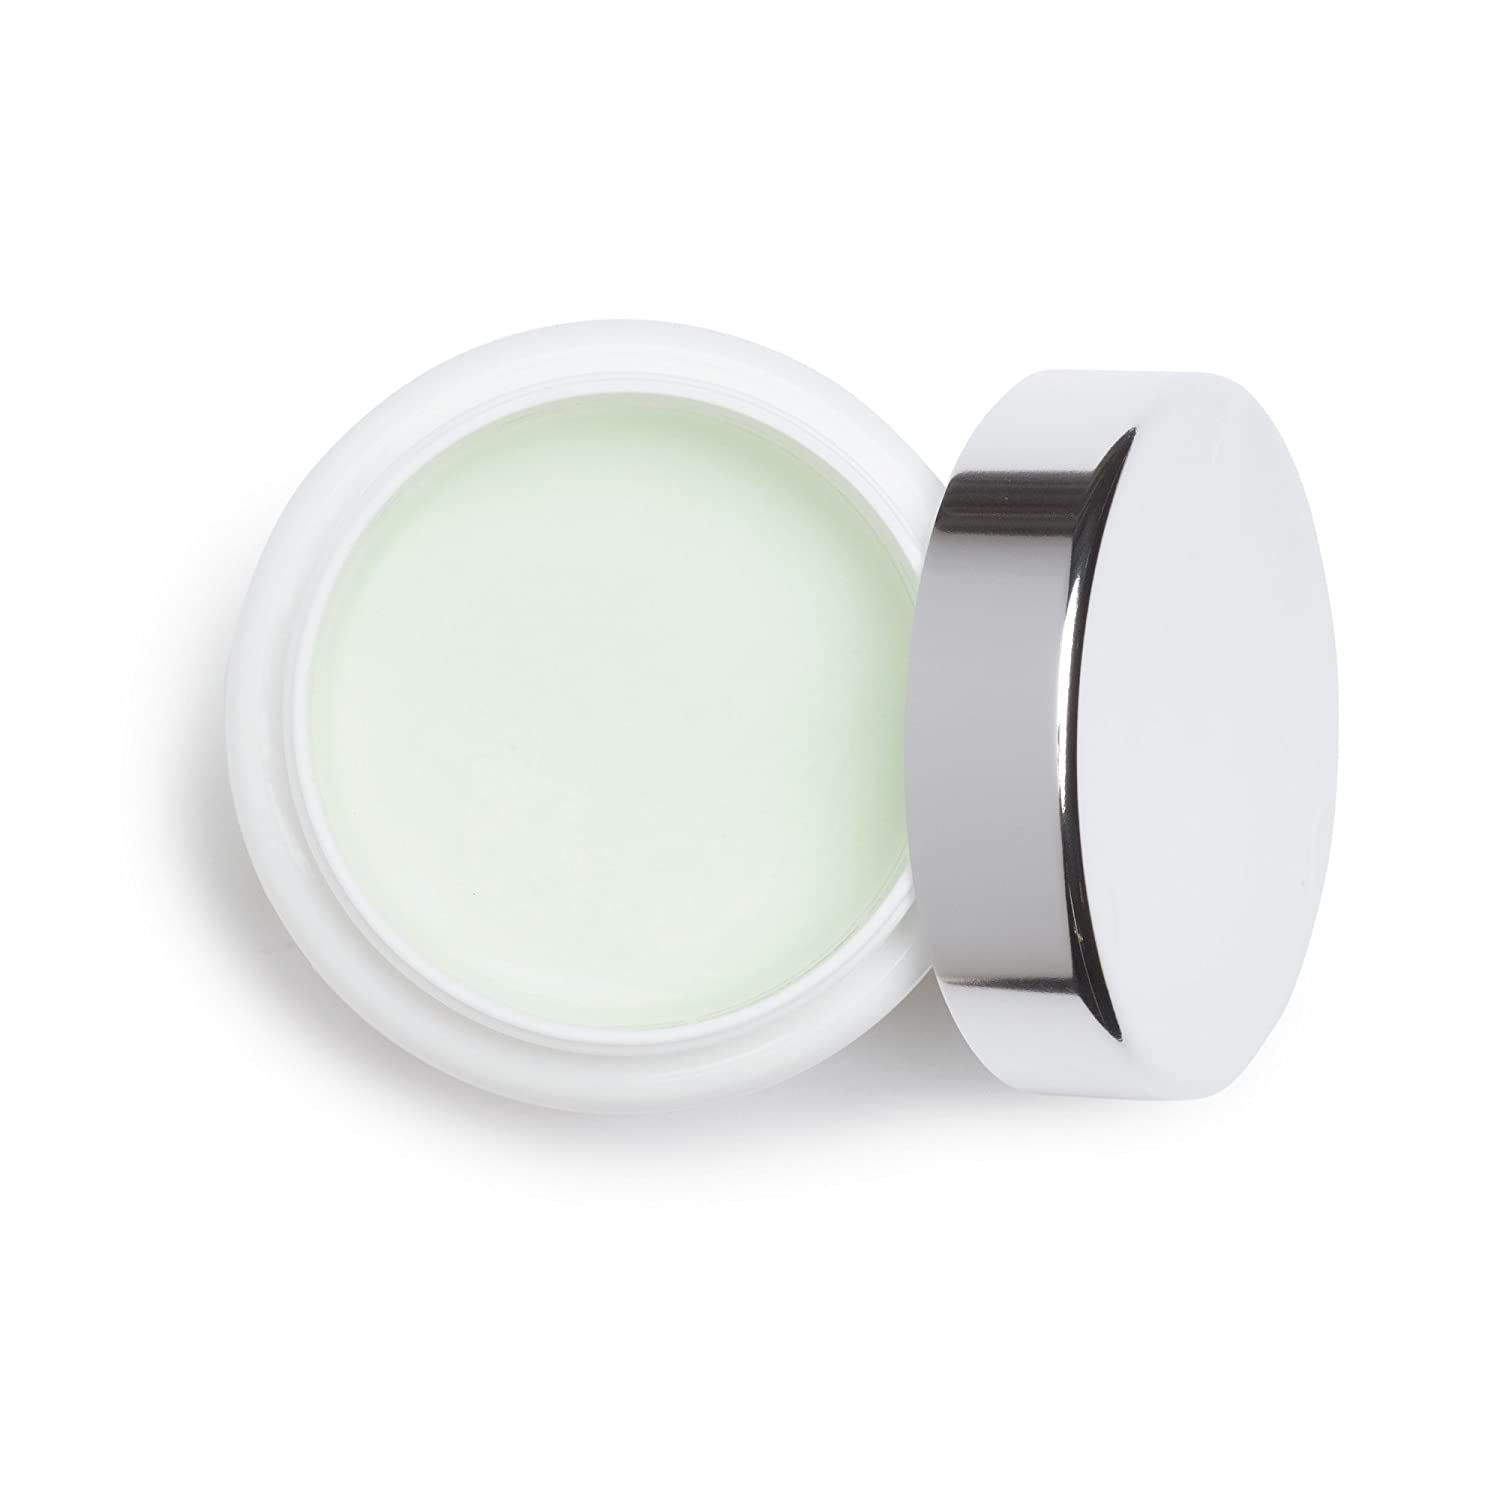 Farmacy Natural Makeup Remover - Green Clean Makeup Meltaway Cleansing Balm Cosmetic : Beauty